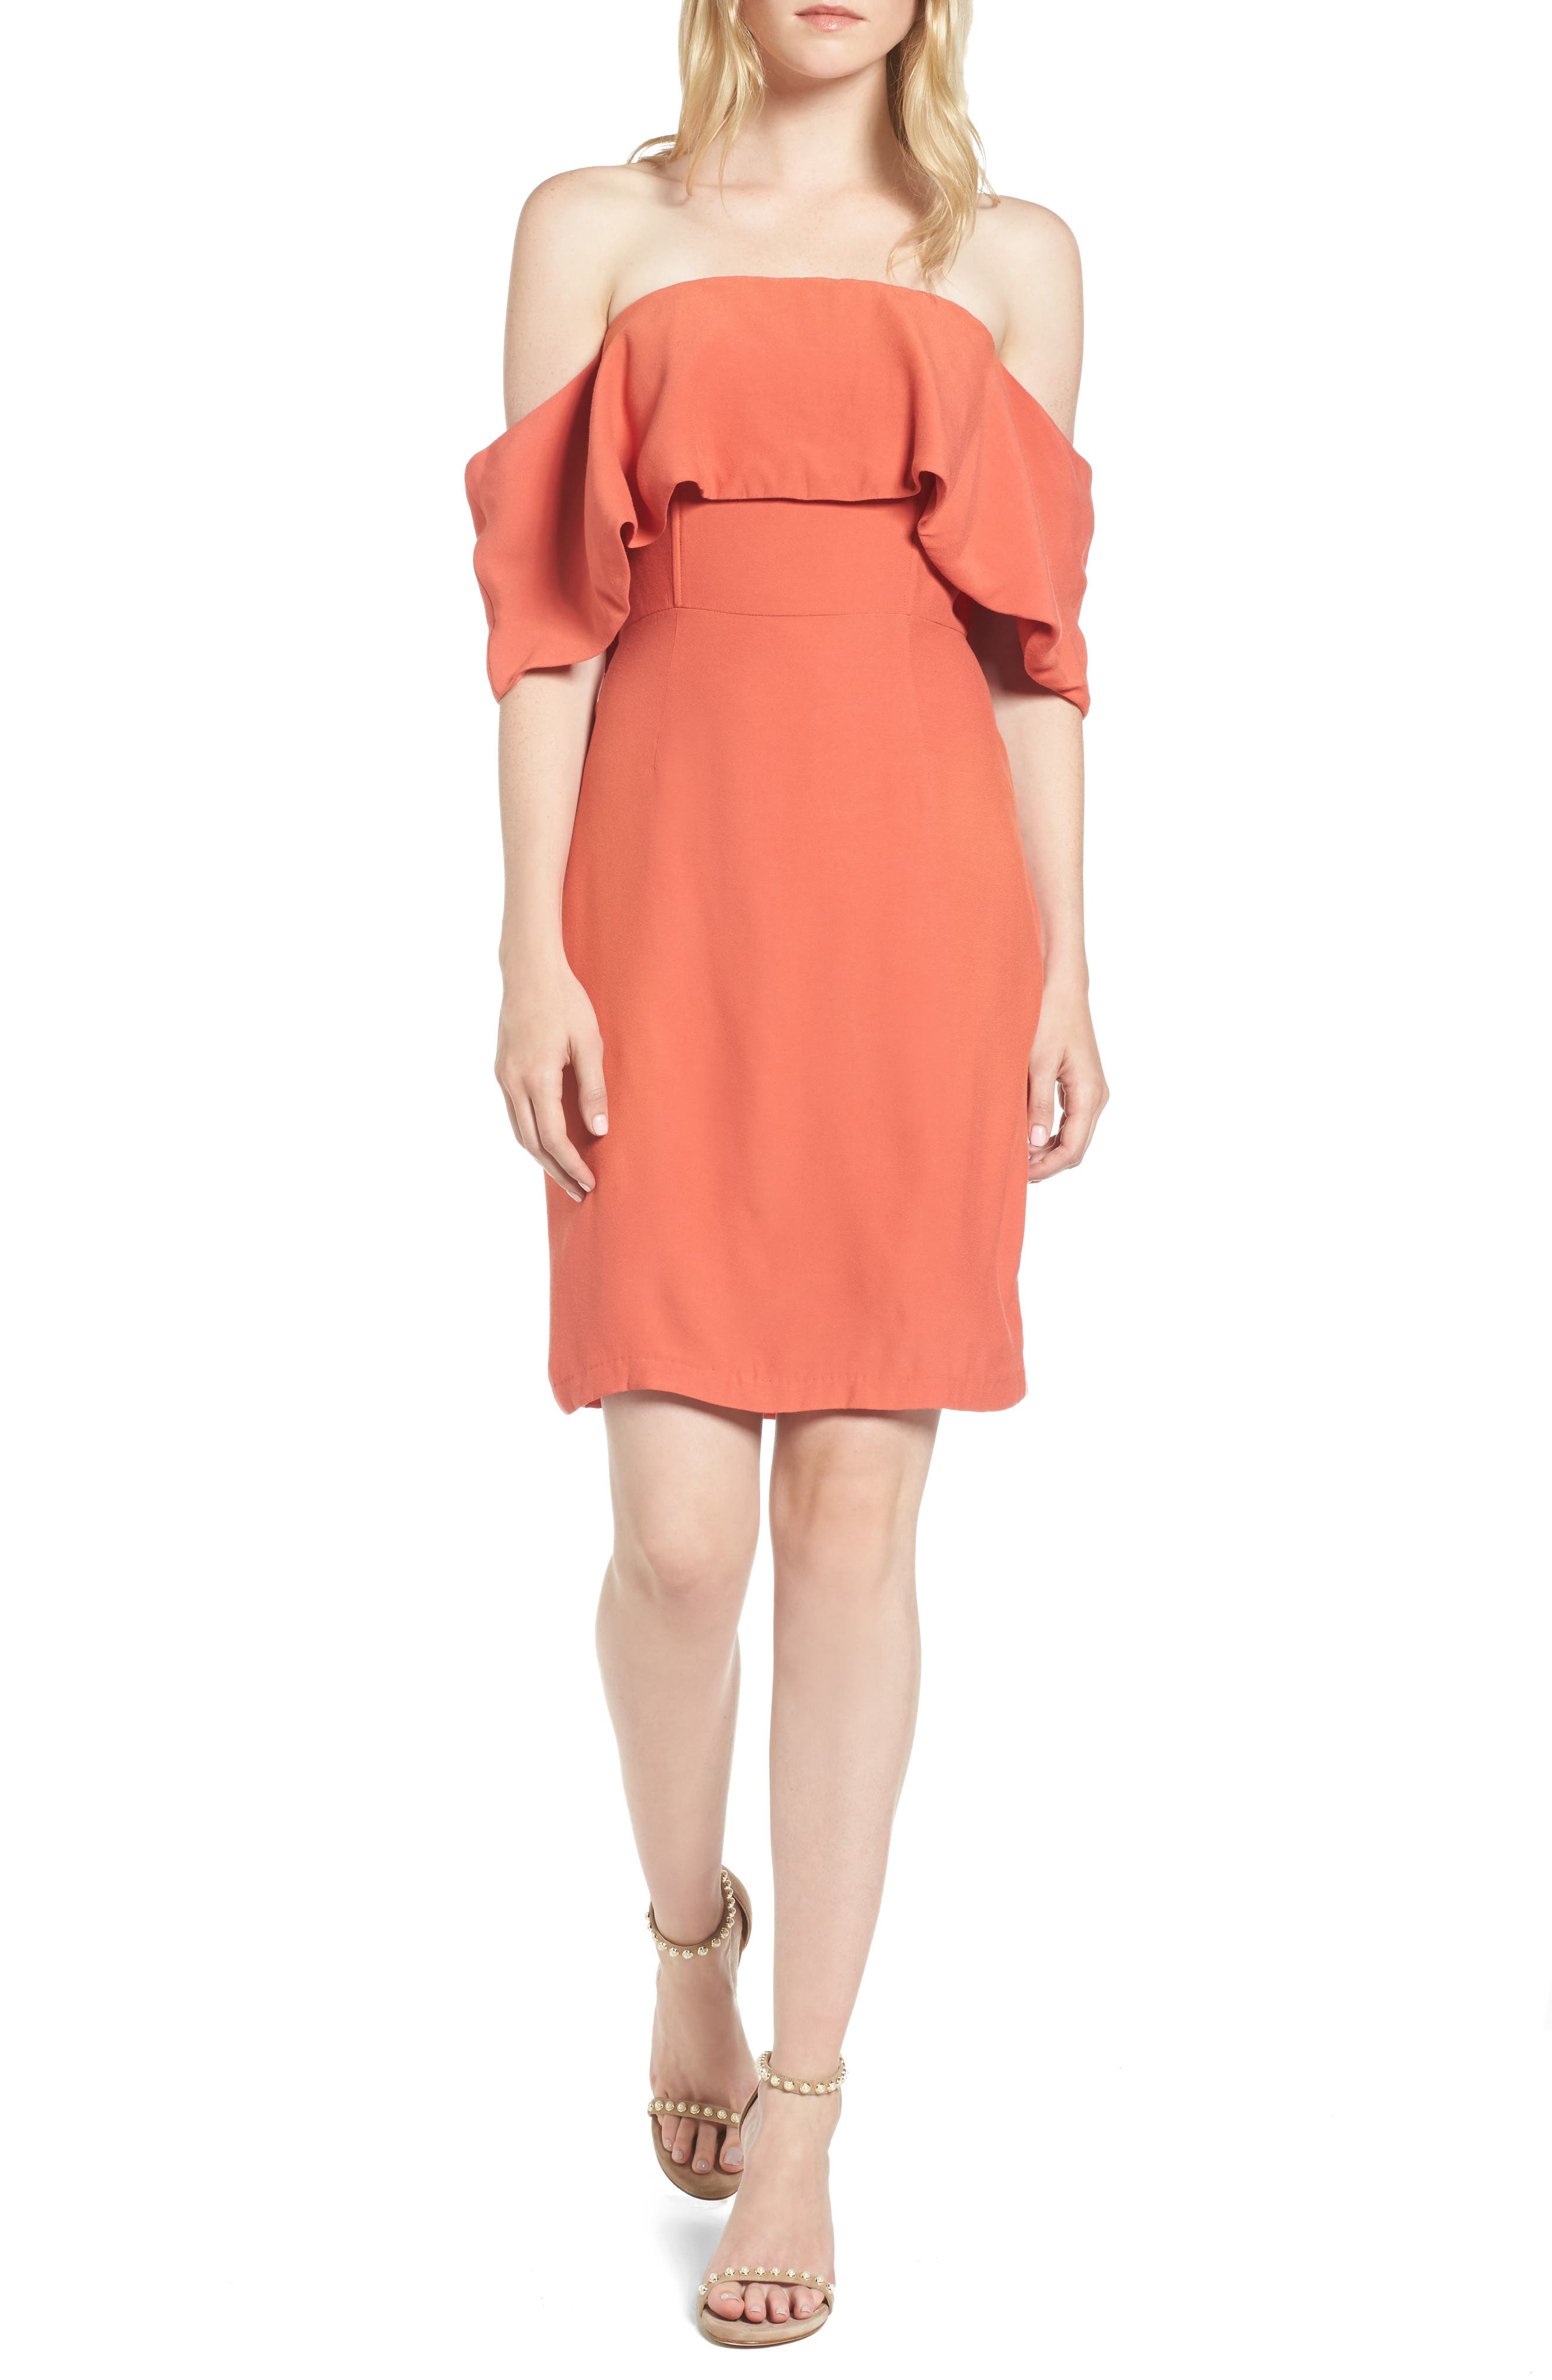 Rudy Off the Shoulder Shift Dress,                             Main thumbnail 1, color,                             Persimmon Red